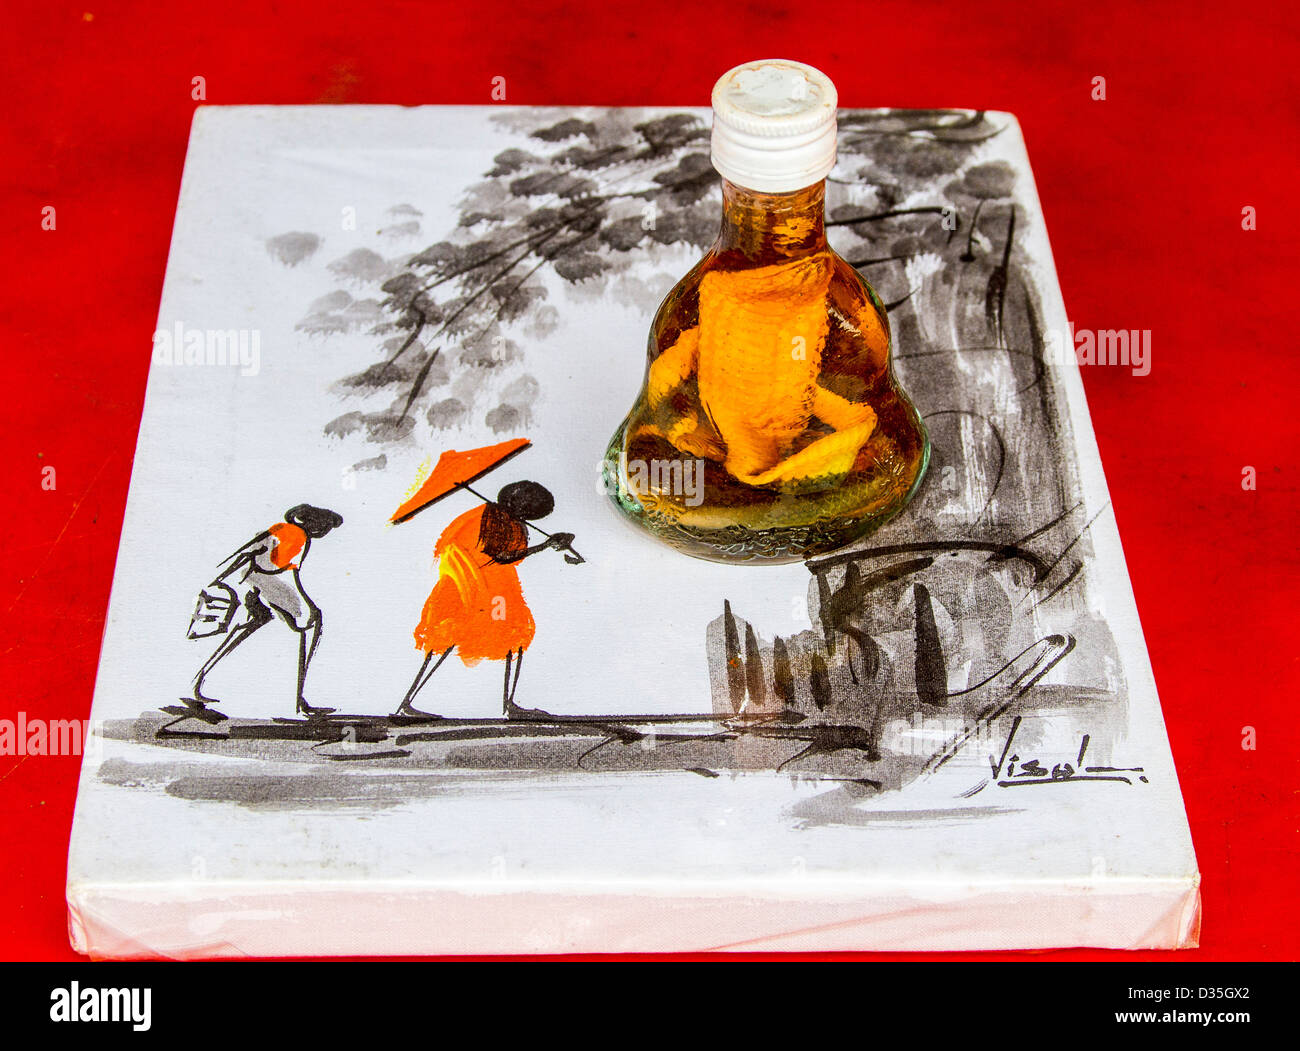 Rice wine with plastic model of cobra snake sold as a souvenir. The real thing is sold to 'cure' coughing - Stock Image